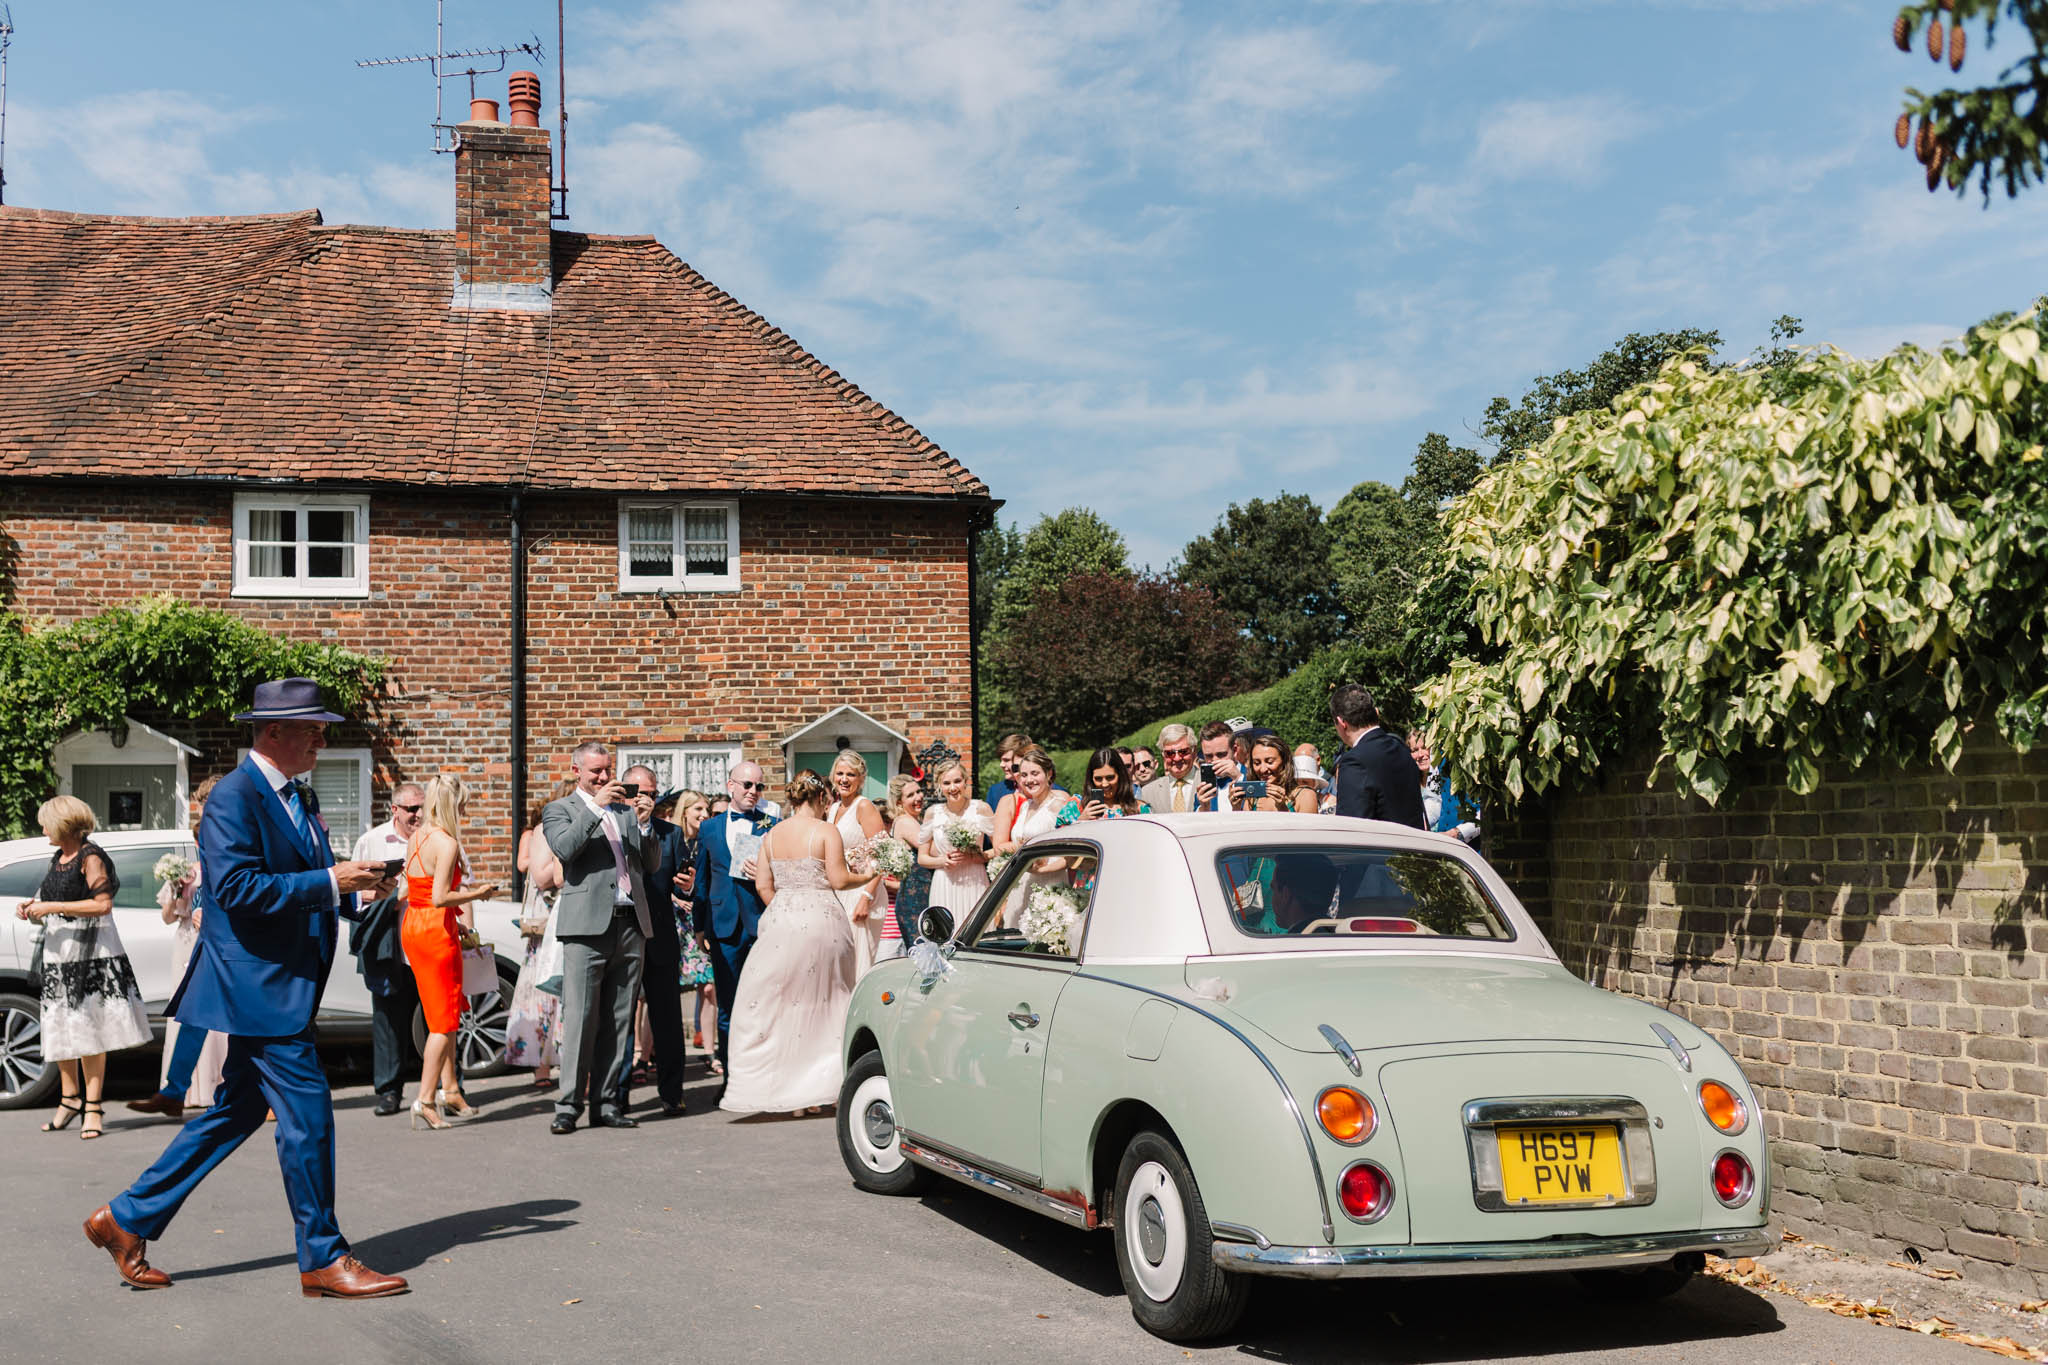 bride and groom in vintage car surrounded by guests